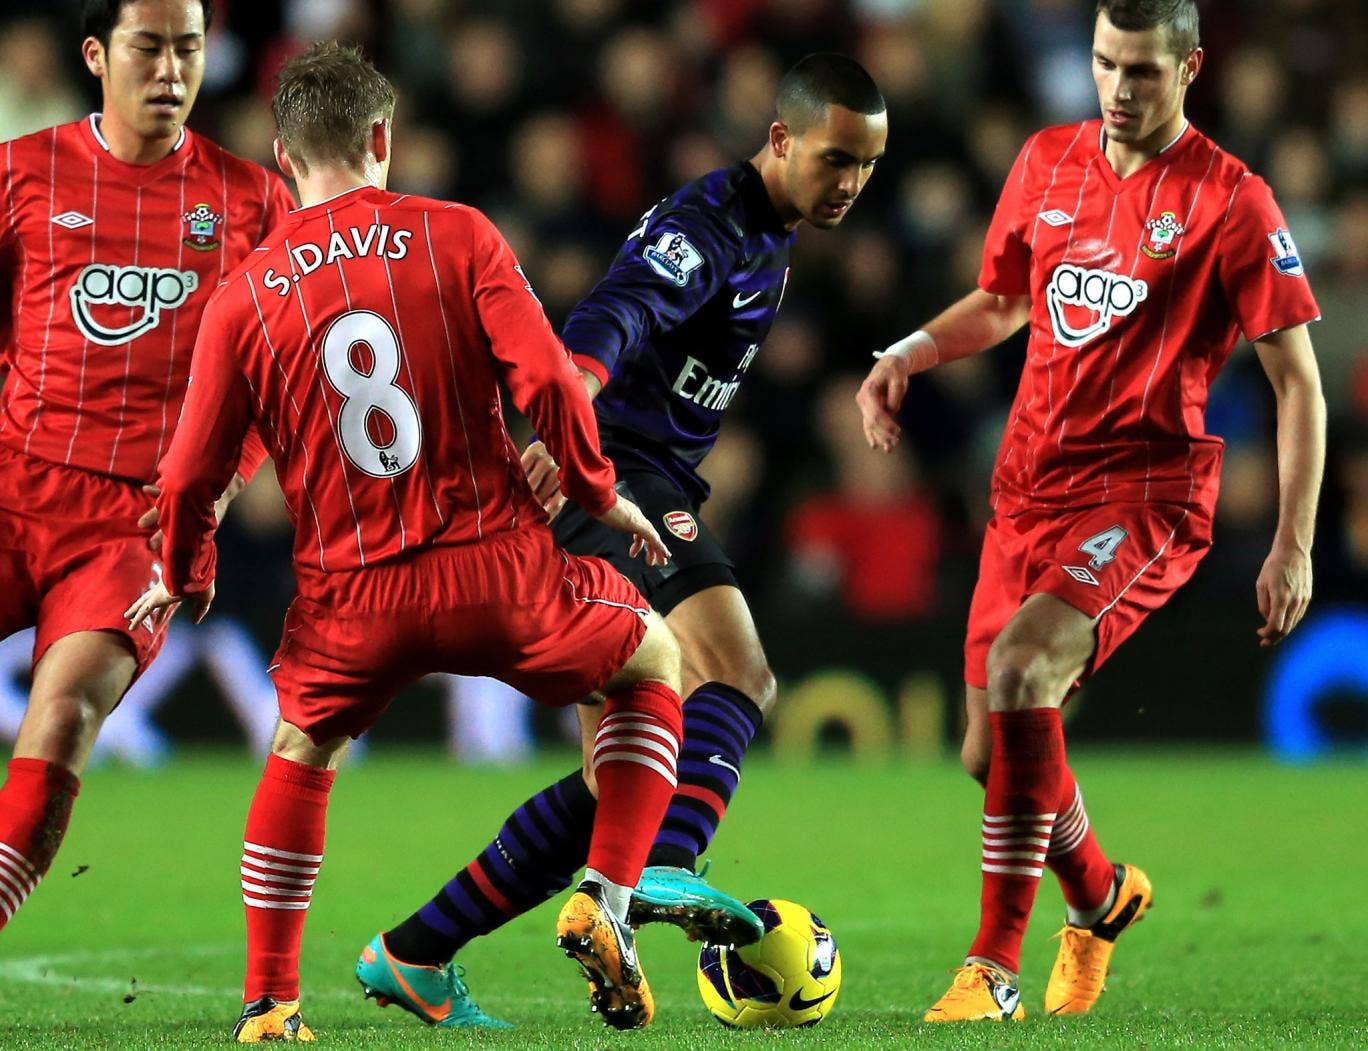 Arsenal's Theo Walcott against his former club Southampton